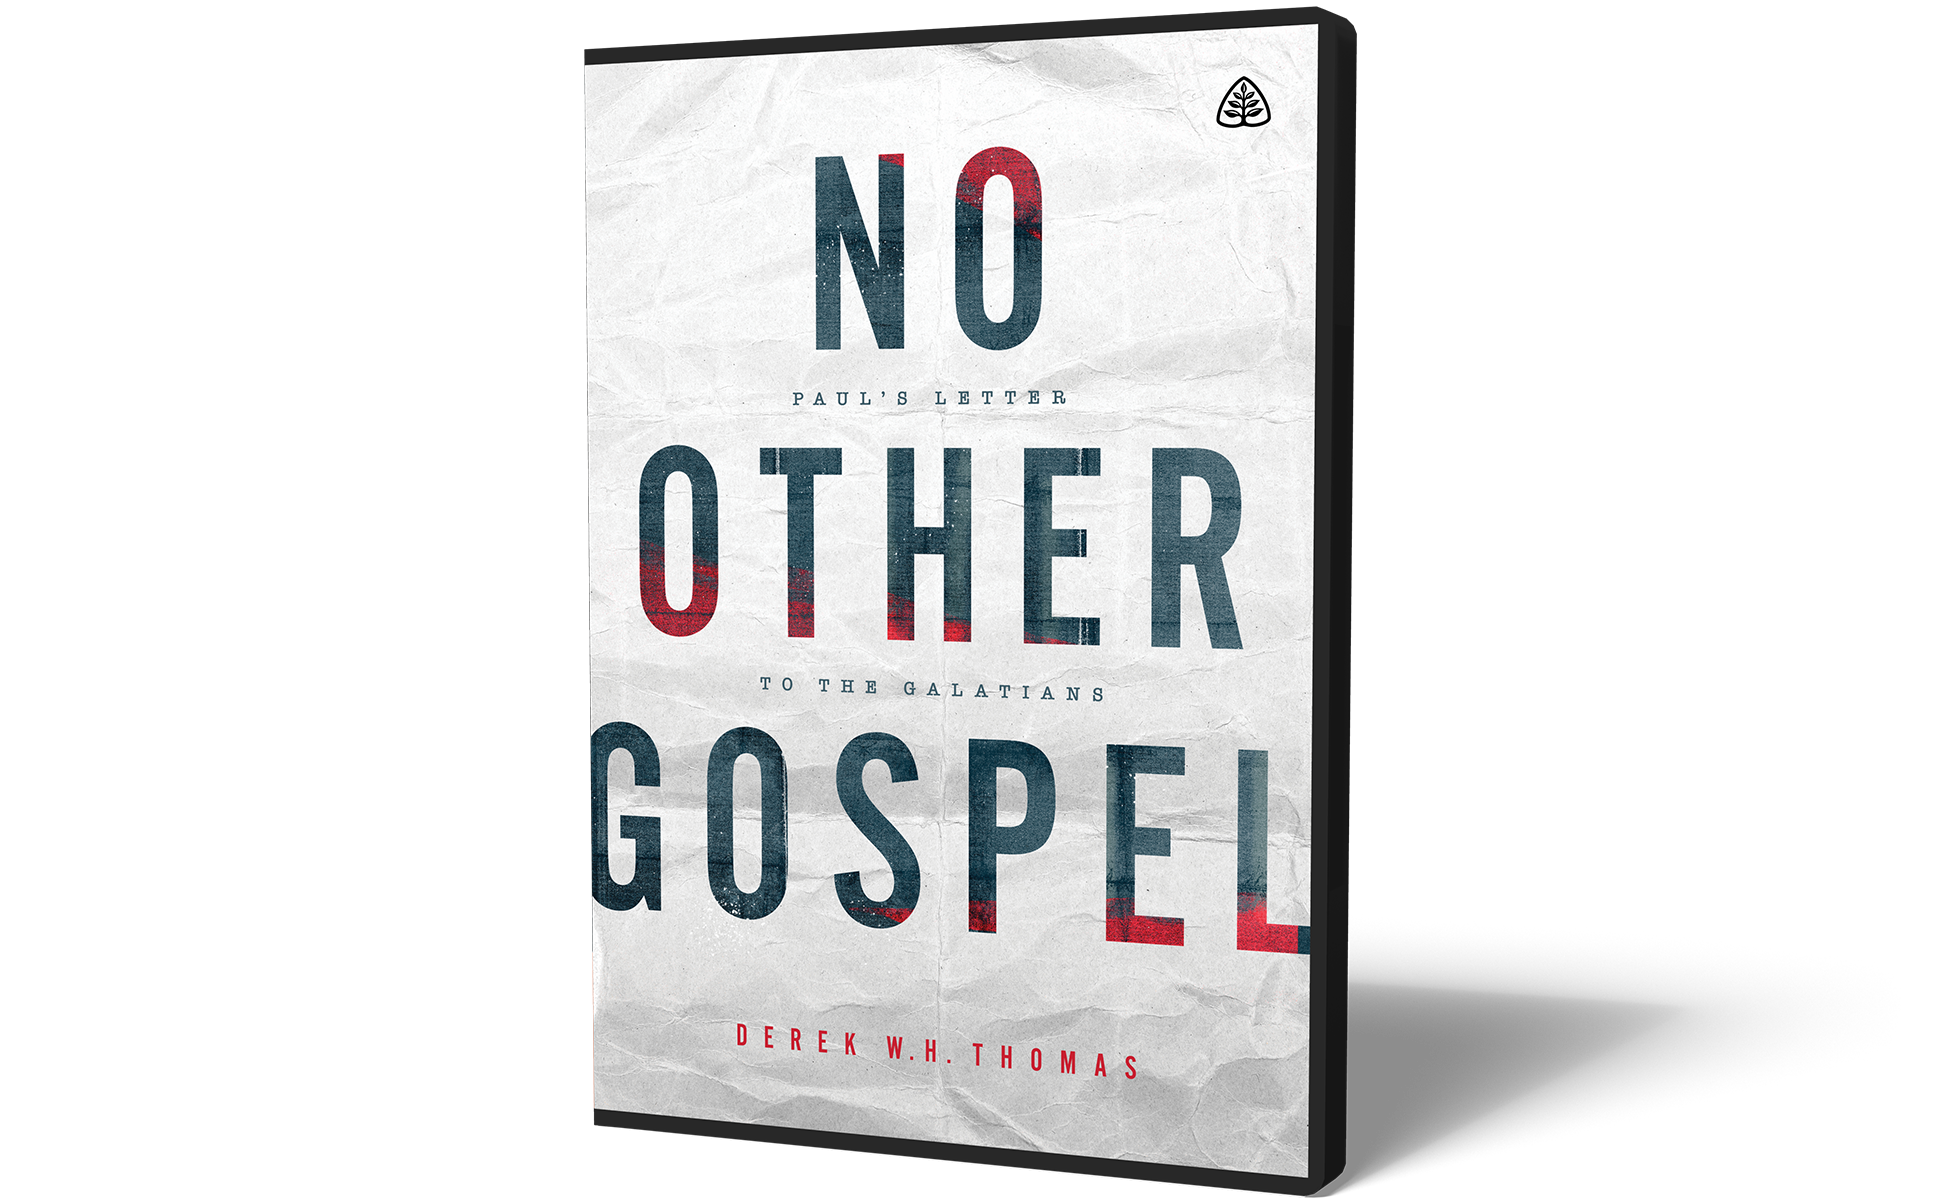 No Other Gospel: Paul's Letter to the Galatians